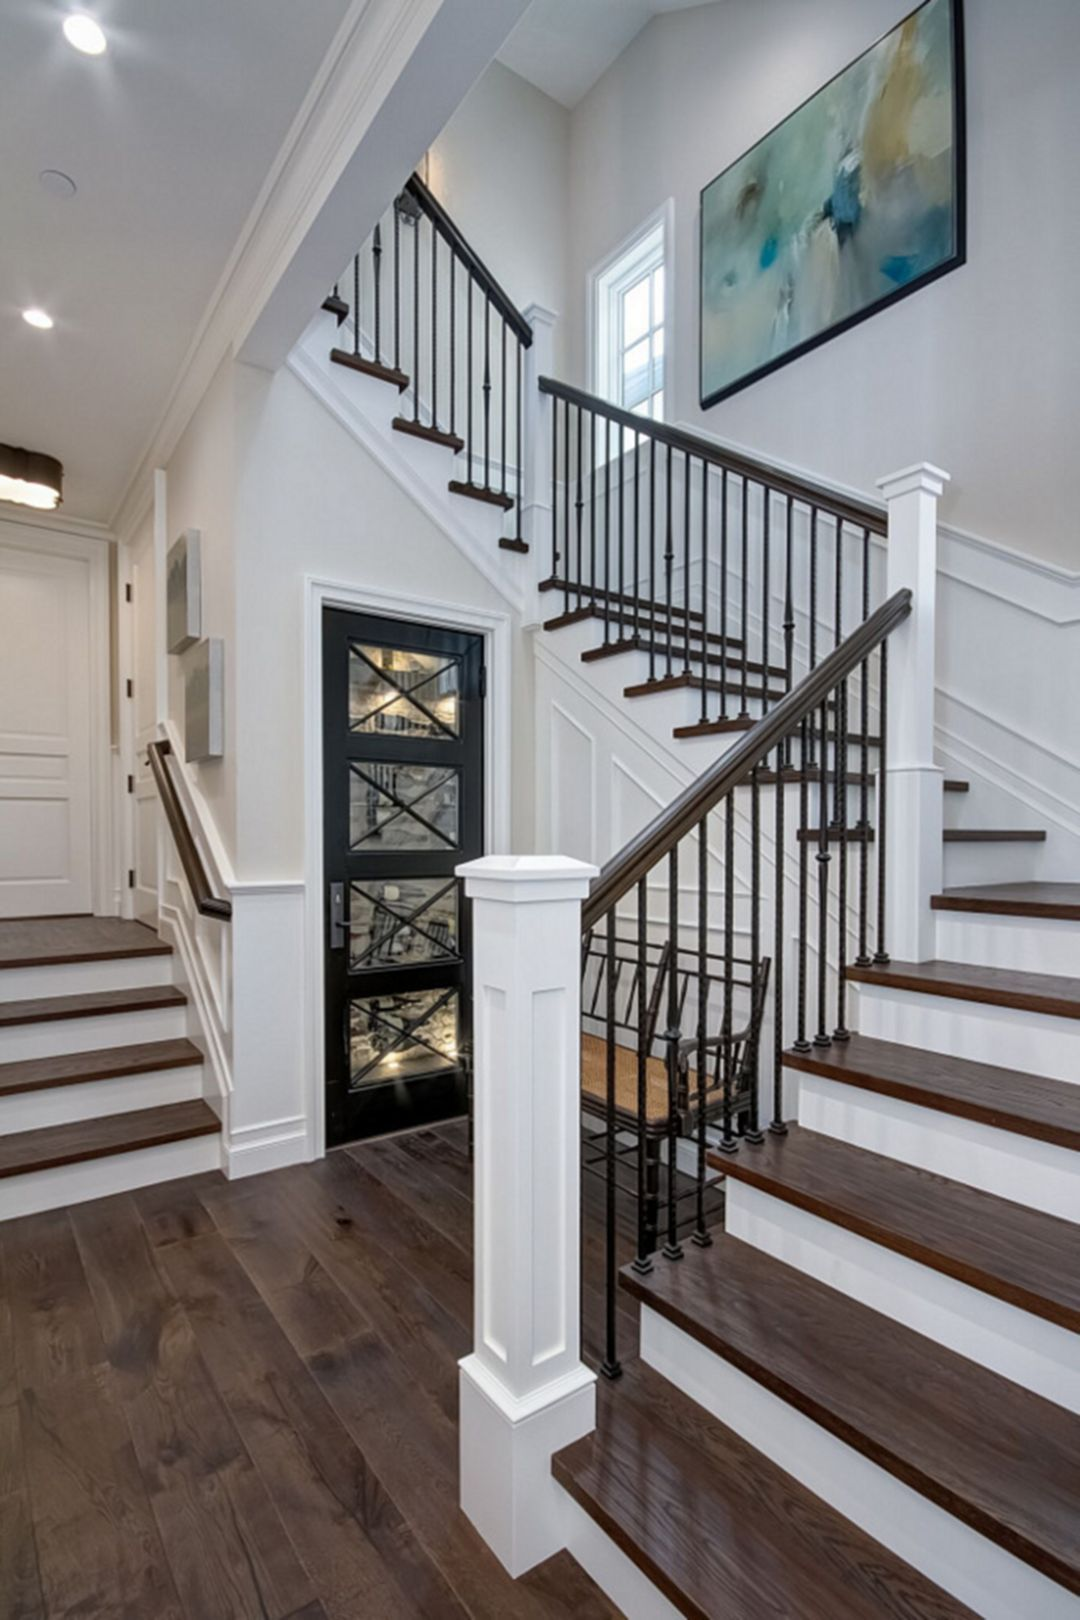 Stair Design Photos 30 Awesome And Stunning Staircase Design Ideas For Your